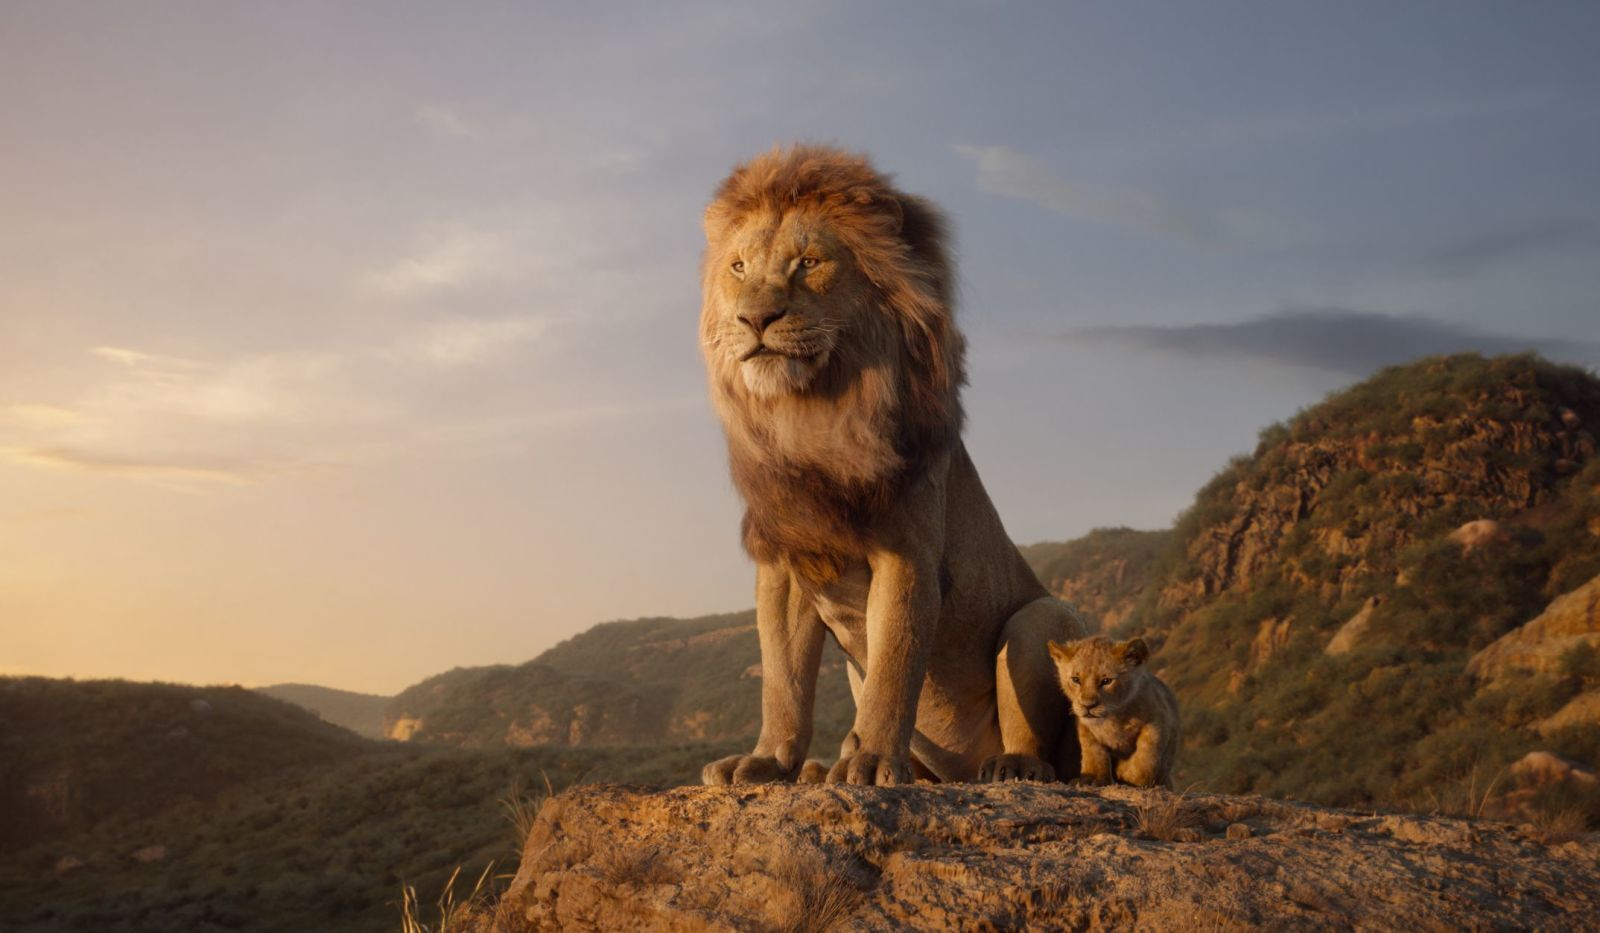 The Lion King (2019) is coming to Disney Plus tomorrow